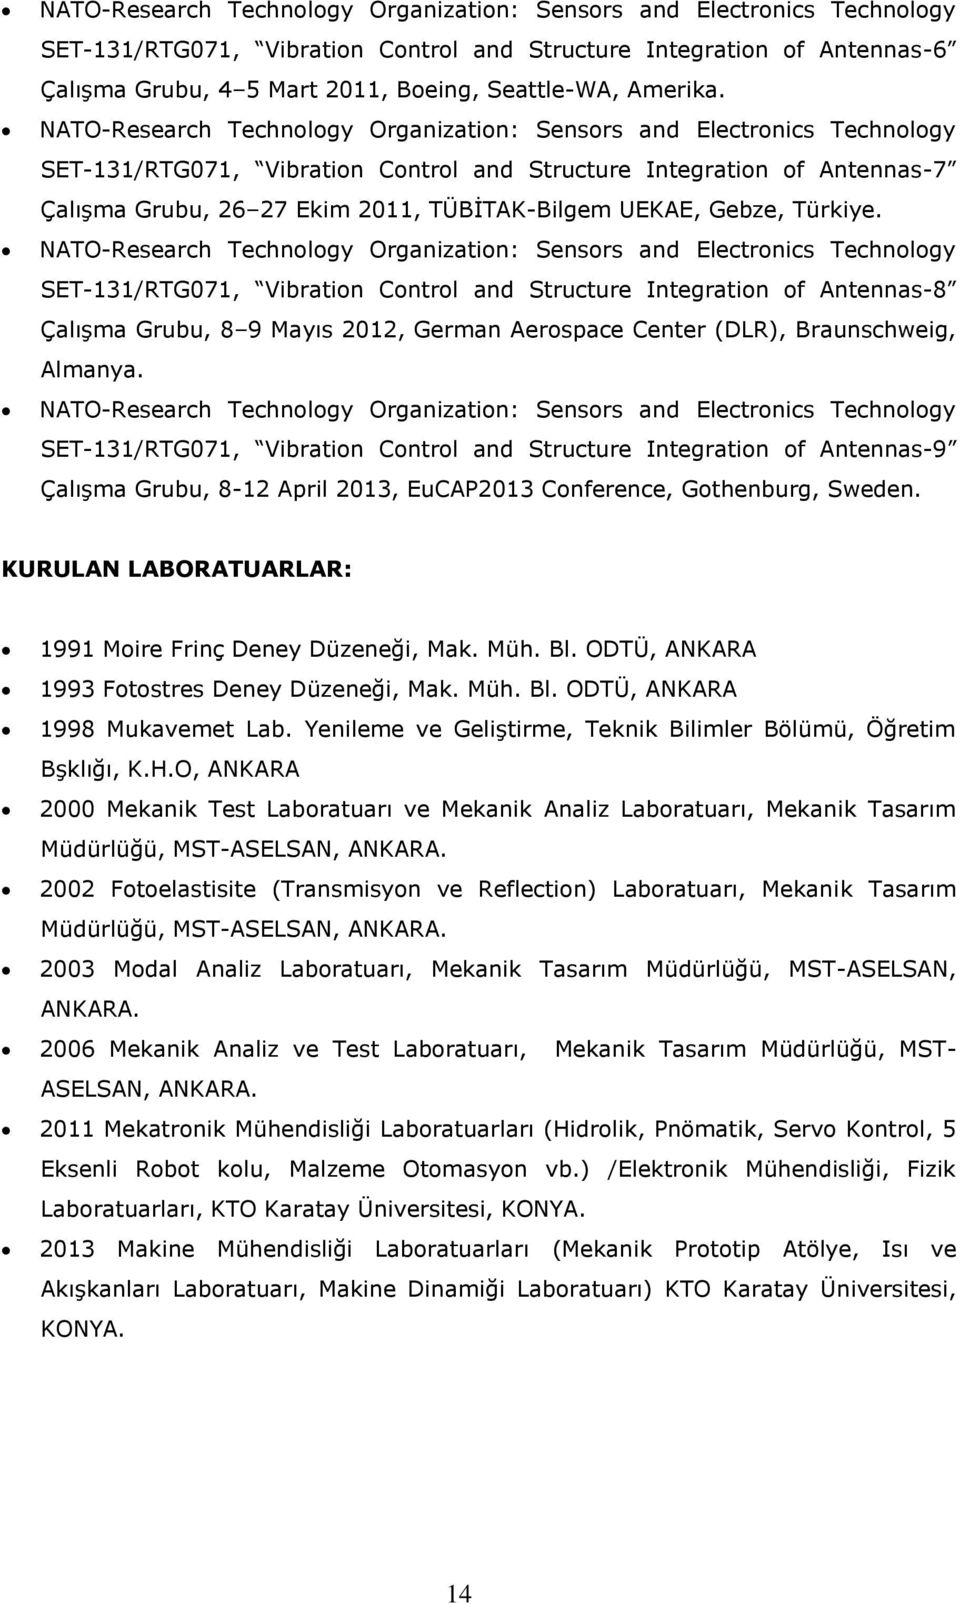 NATO-Research Technology Organization: Sensors and Electronics Technology SET-131/RTG071, Vibration Control and Structure Integration of Antennas-7 Çalışma Grubu, 26 27 Ekim 2011, TÜBİTAK-Bilgem